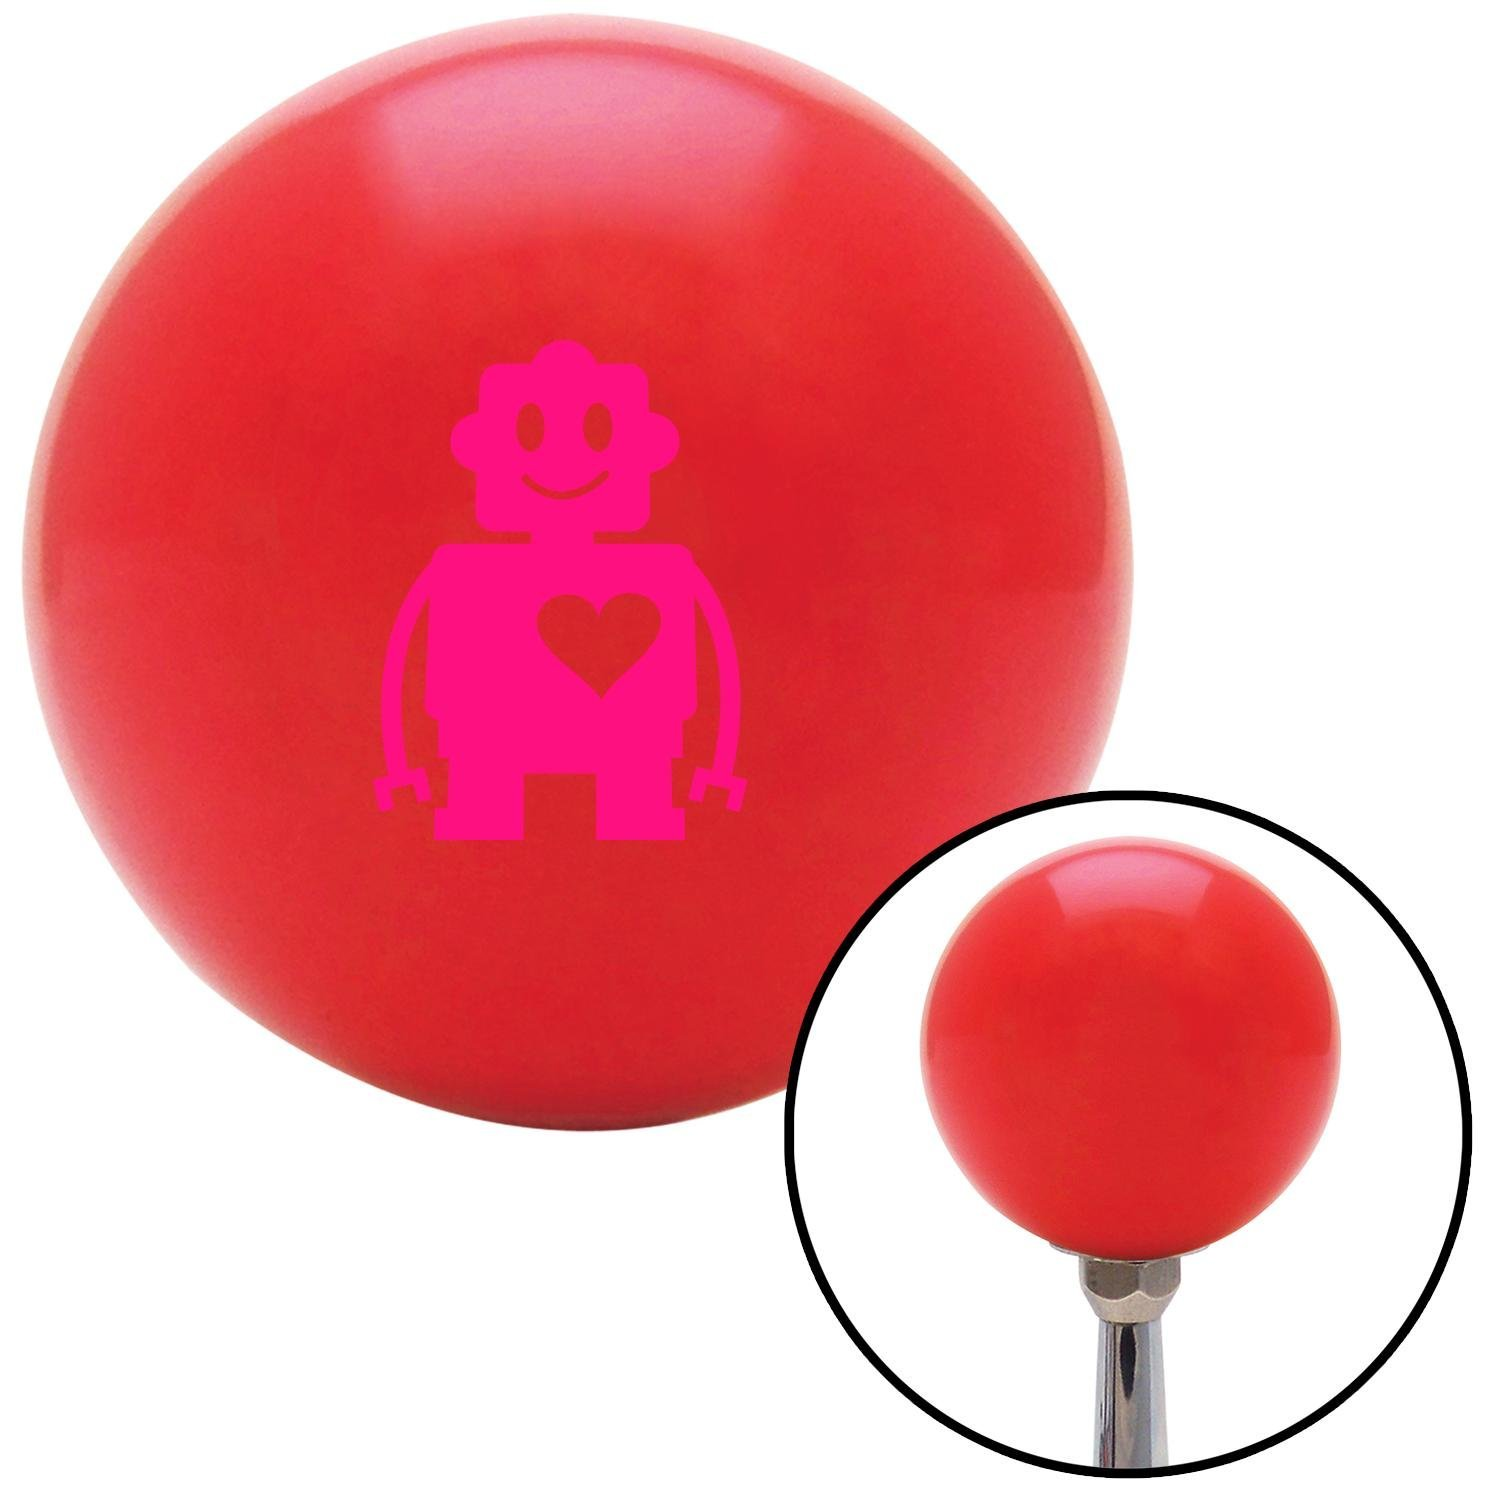 American Shifter 99228 Red Shift Knob with M16 x 1.5 Insert Pink Robot Love